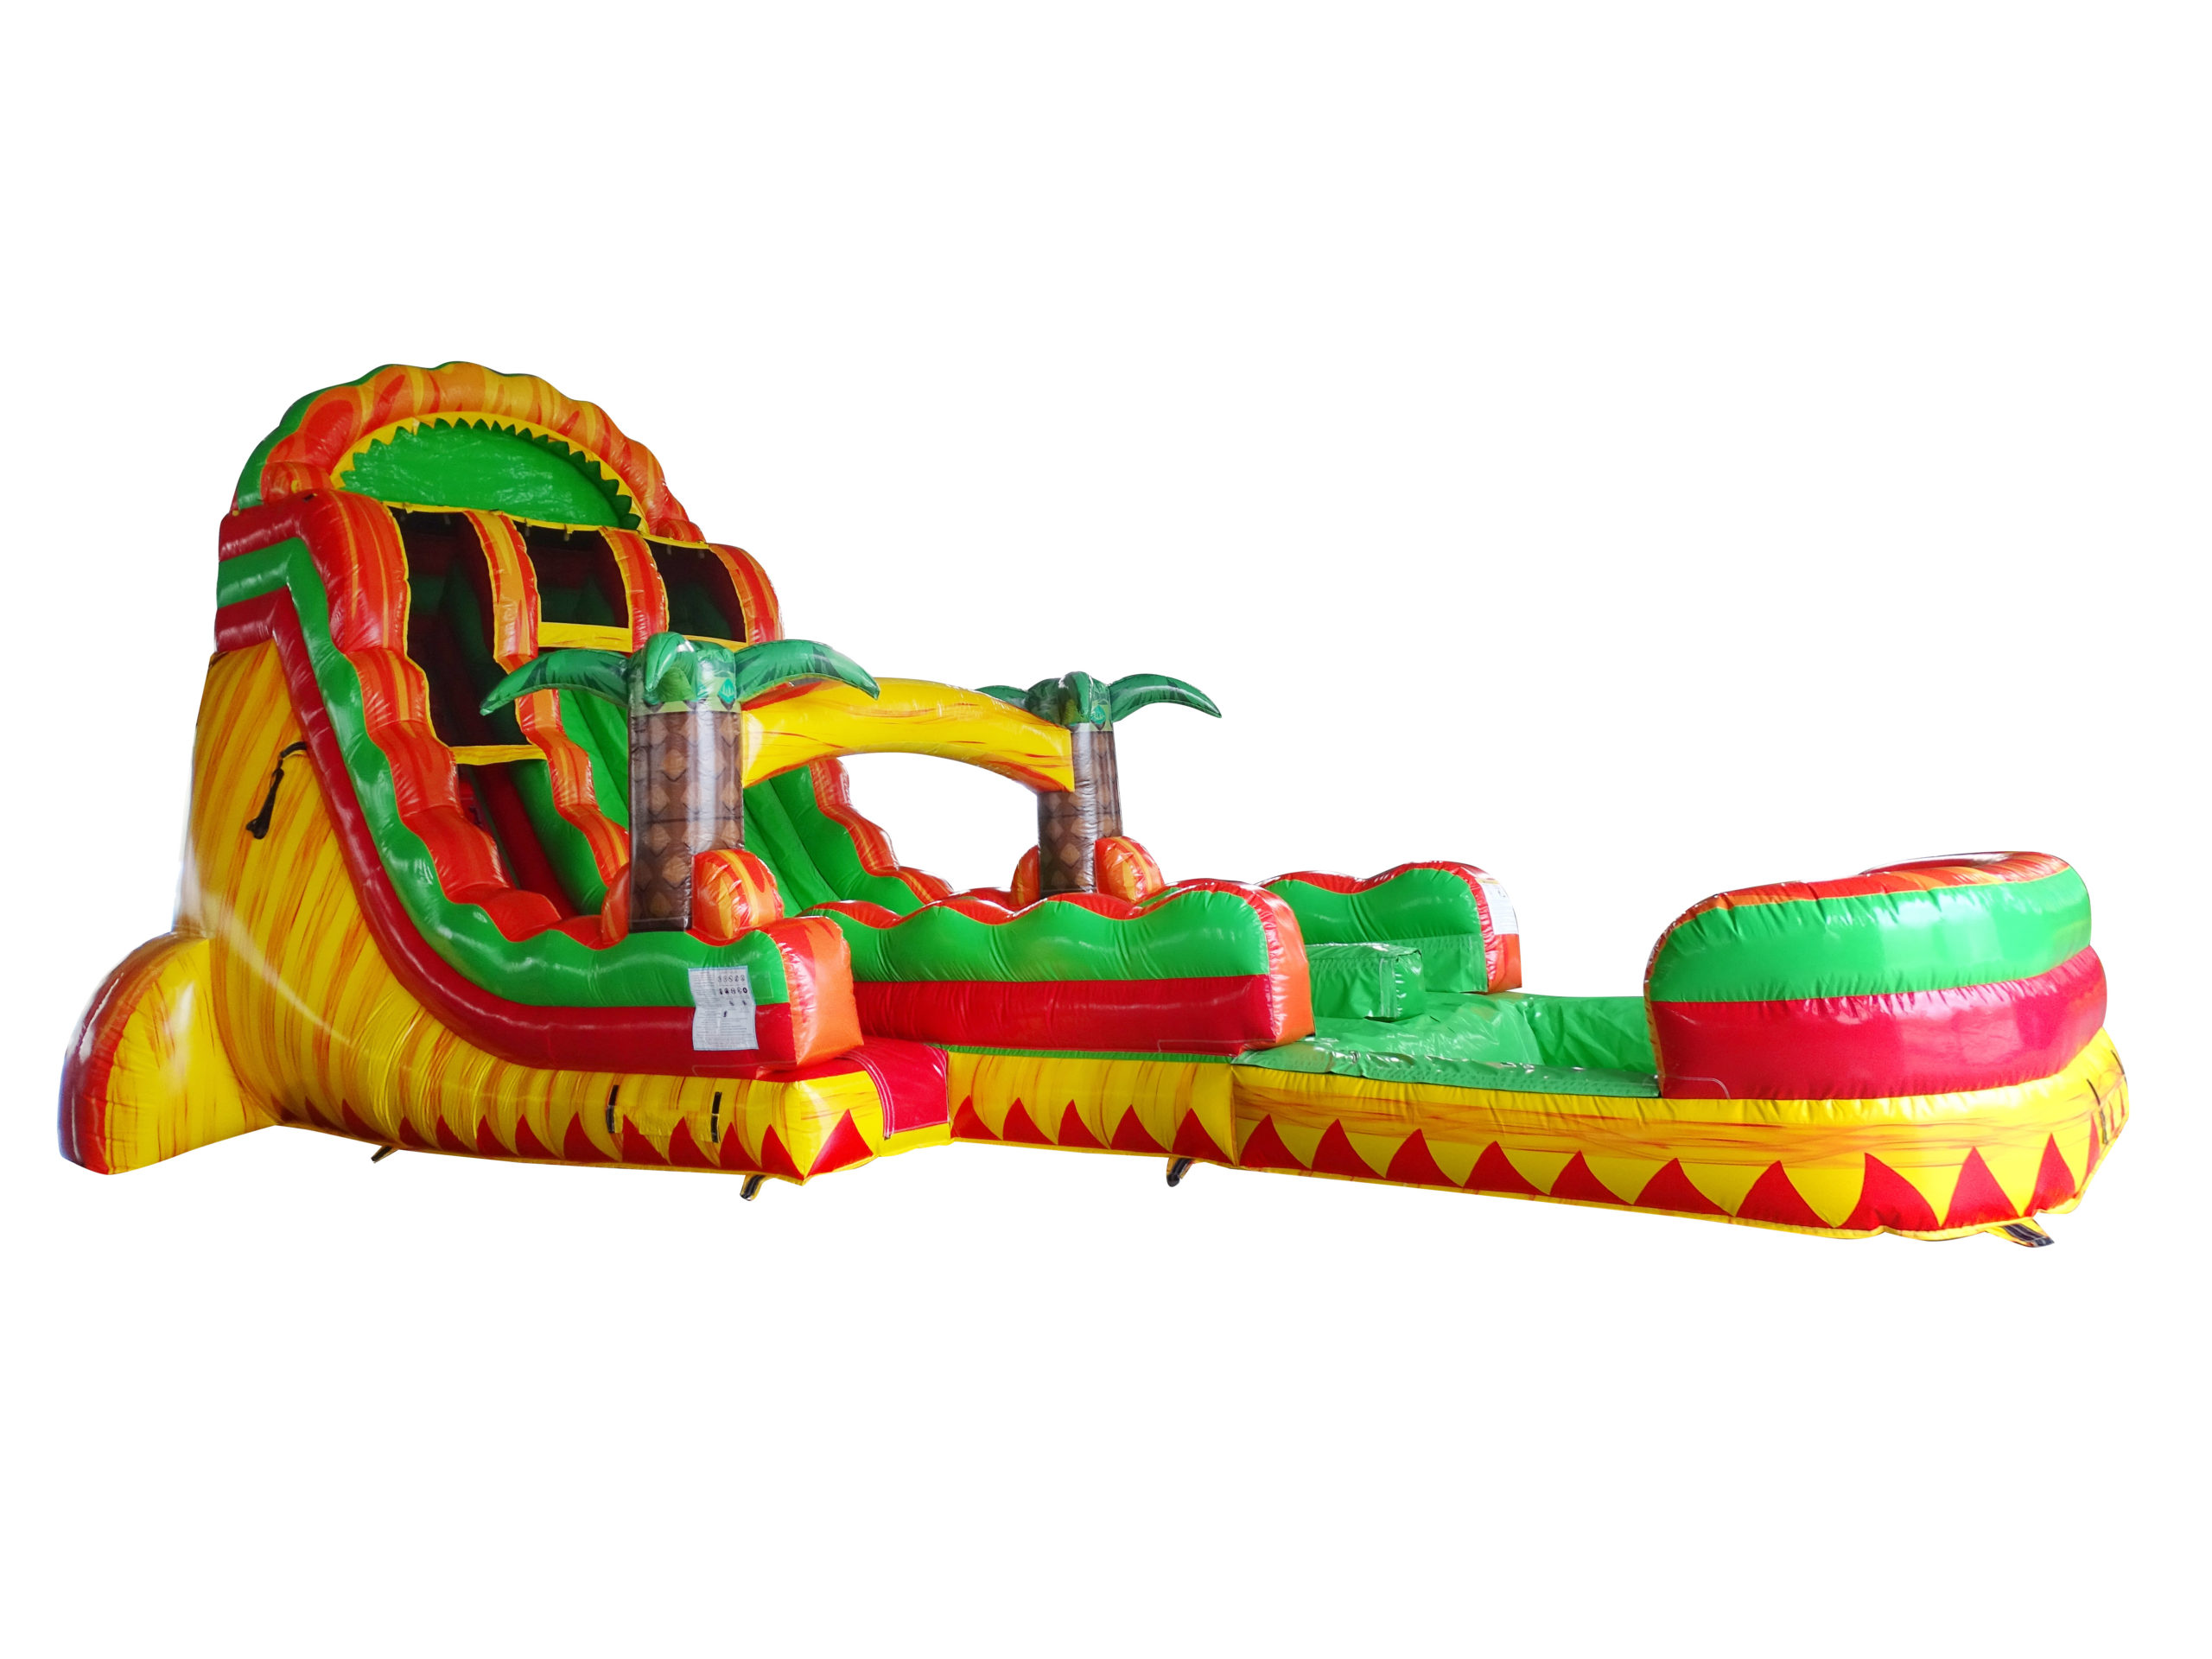 19ft-Inferno-Green-1-2-scaled